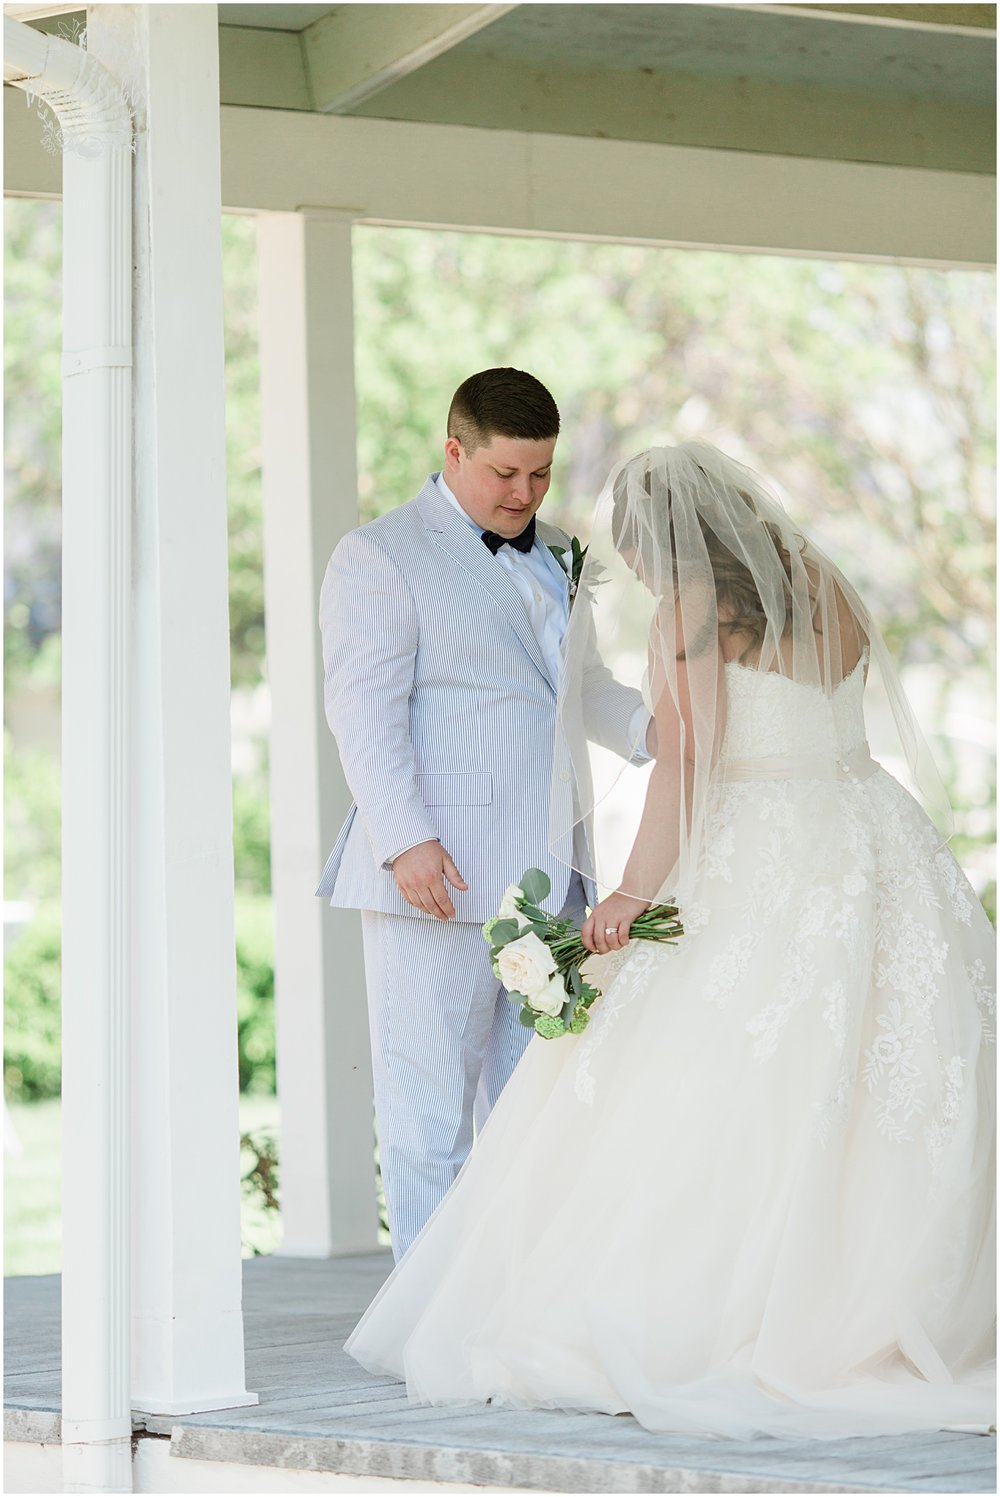 ANDREA & MICHAEL WEDDING | HICKORY CREEK RANCH | MARISSA CRIBBS PHOTOGRAPHY_4844.jpg